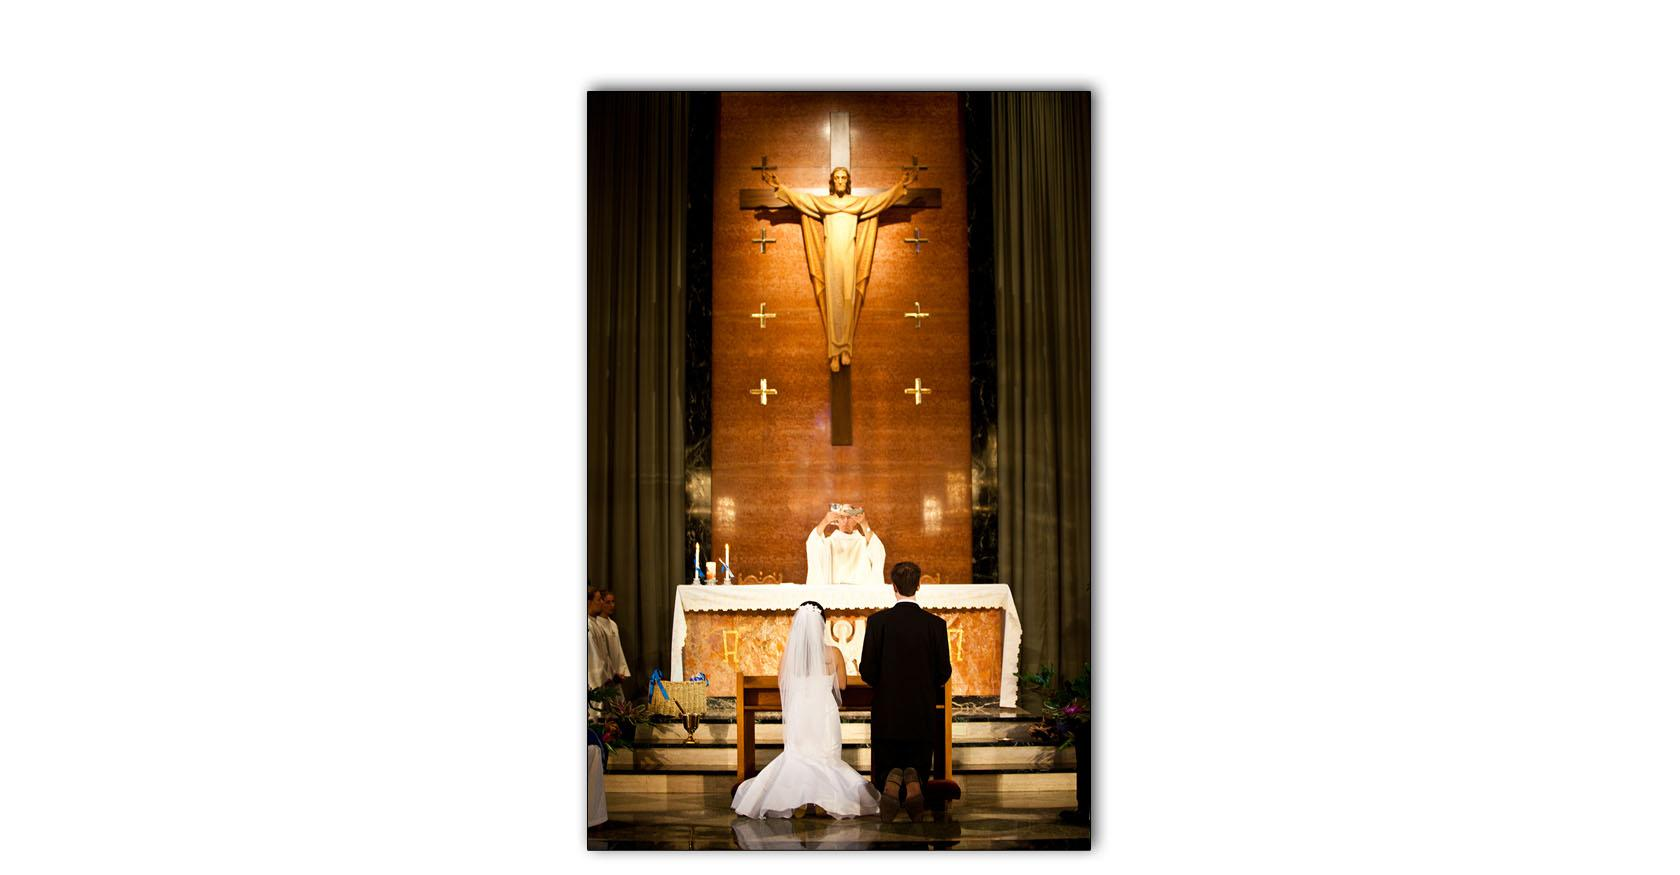 Catholic Wedding Gift For Groom : WEDDING GIFTS For MOTHER In Law Personalized Embroidered Handkerchiefs ...